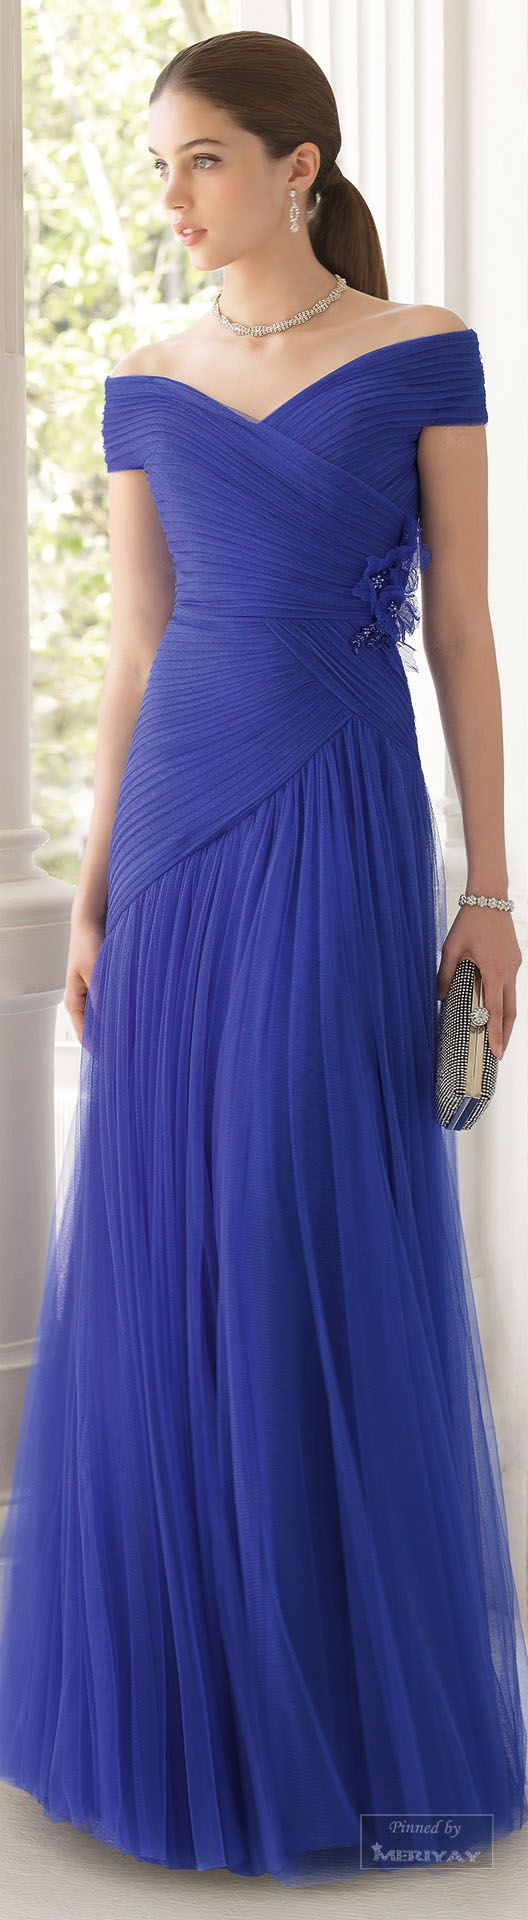 Aire Barcelona ~ Off the Shoulder Violet Pleated Chiffon Gown 2015 ...